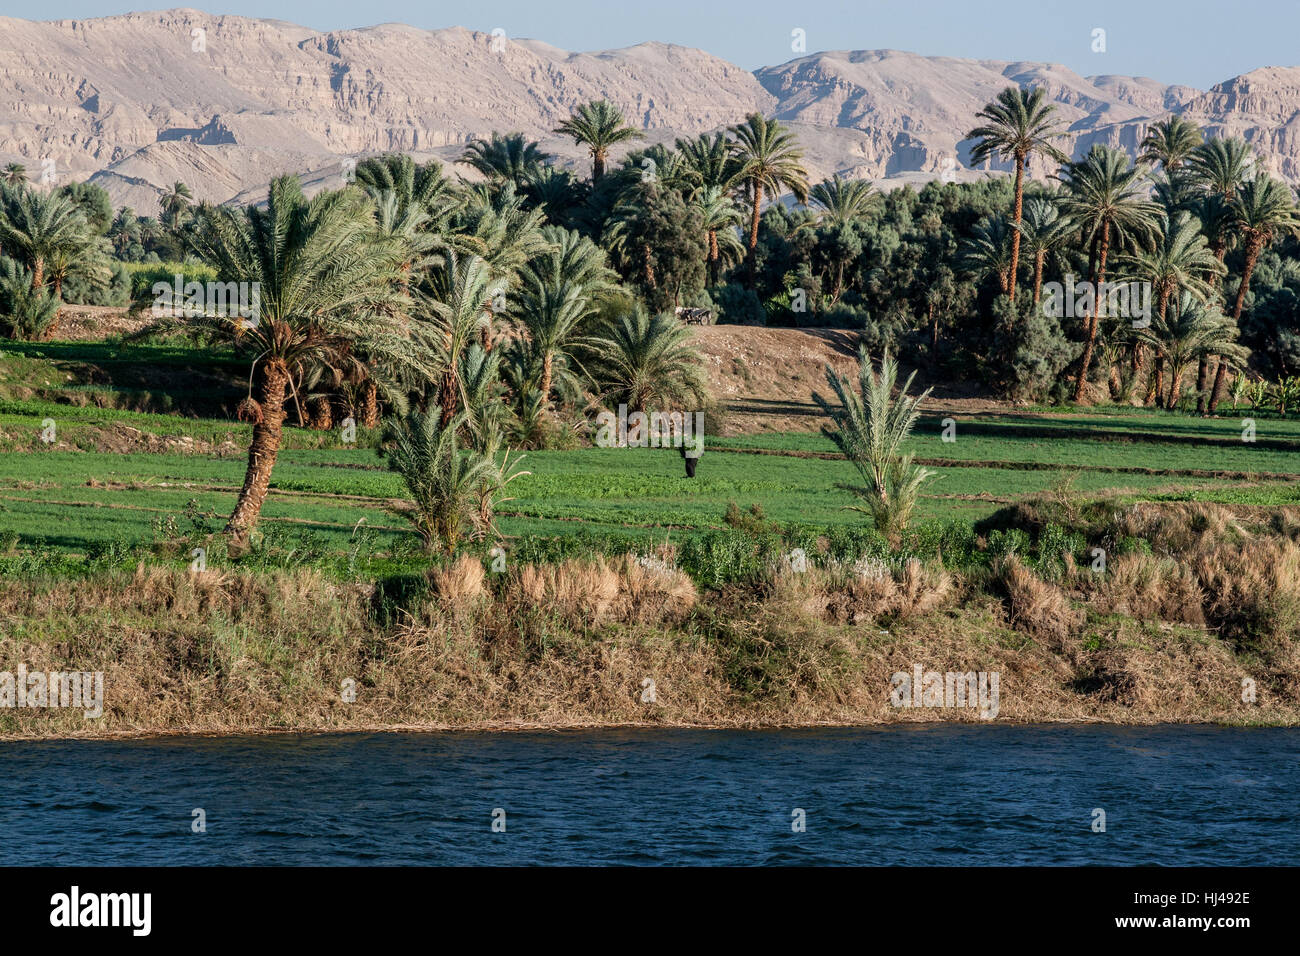 Worker in the field hauling crops along the Nile River ...